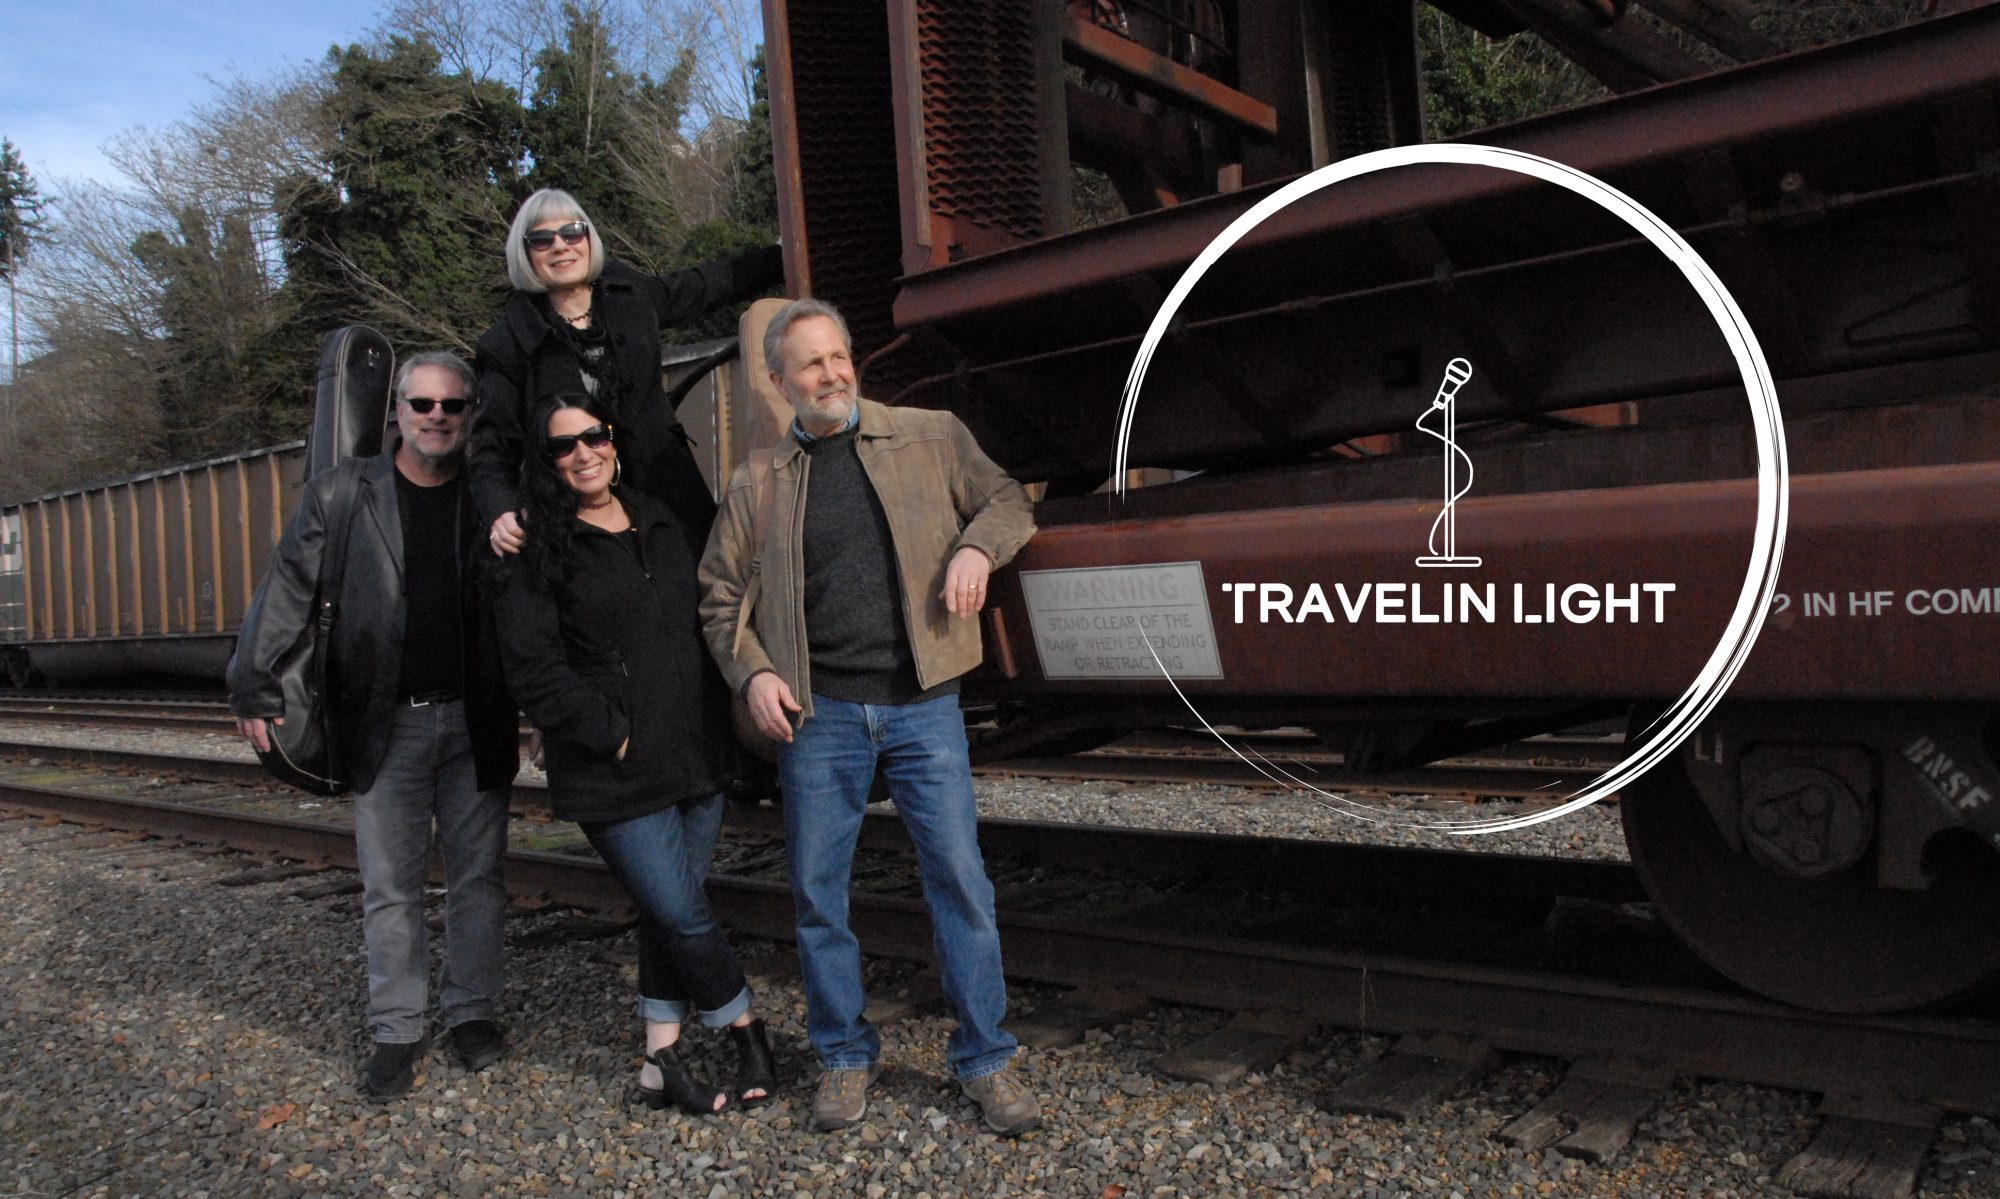 travelinlightlive.com